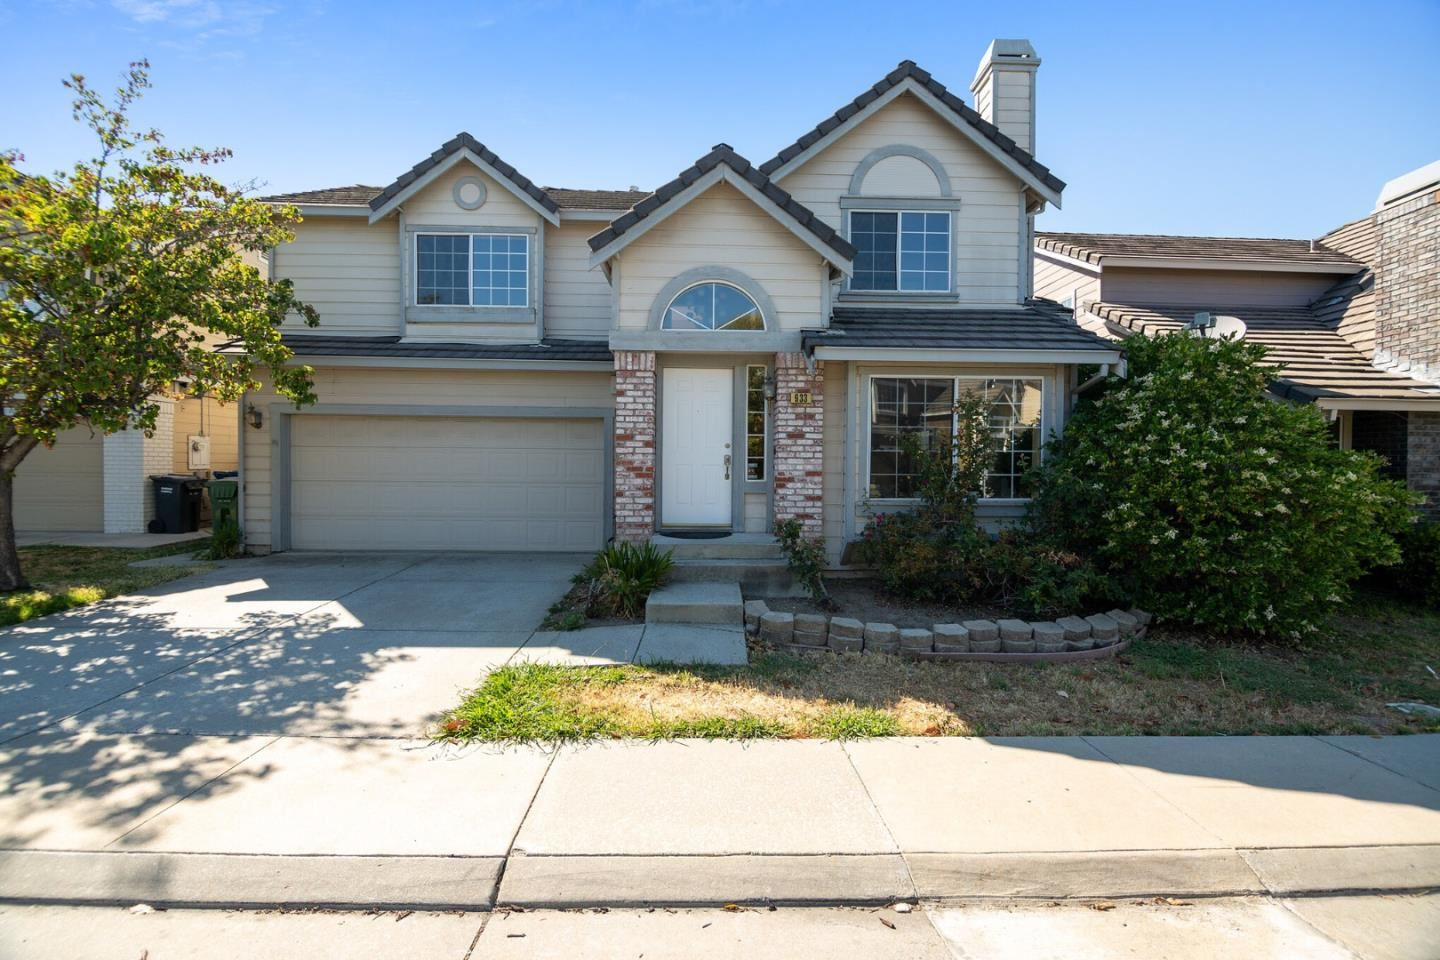 Photo for 933 Coventry Way, MILPITAS, CA 95035 (MLS # ML81847368)